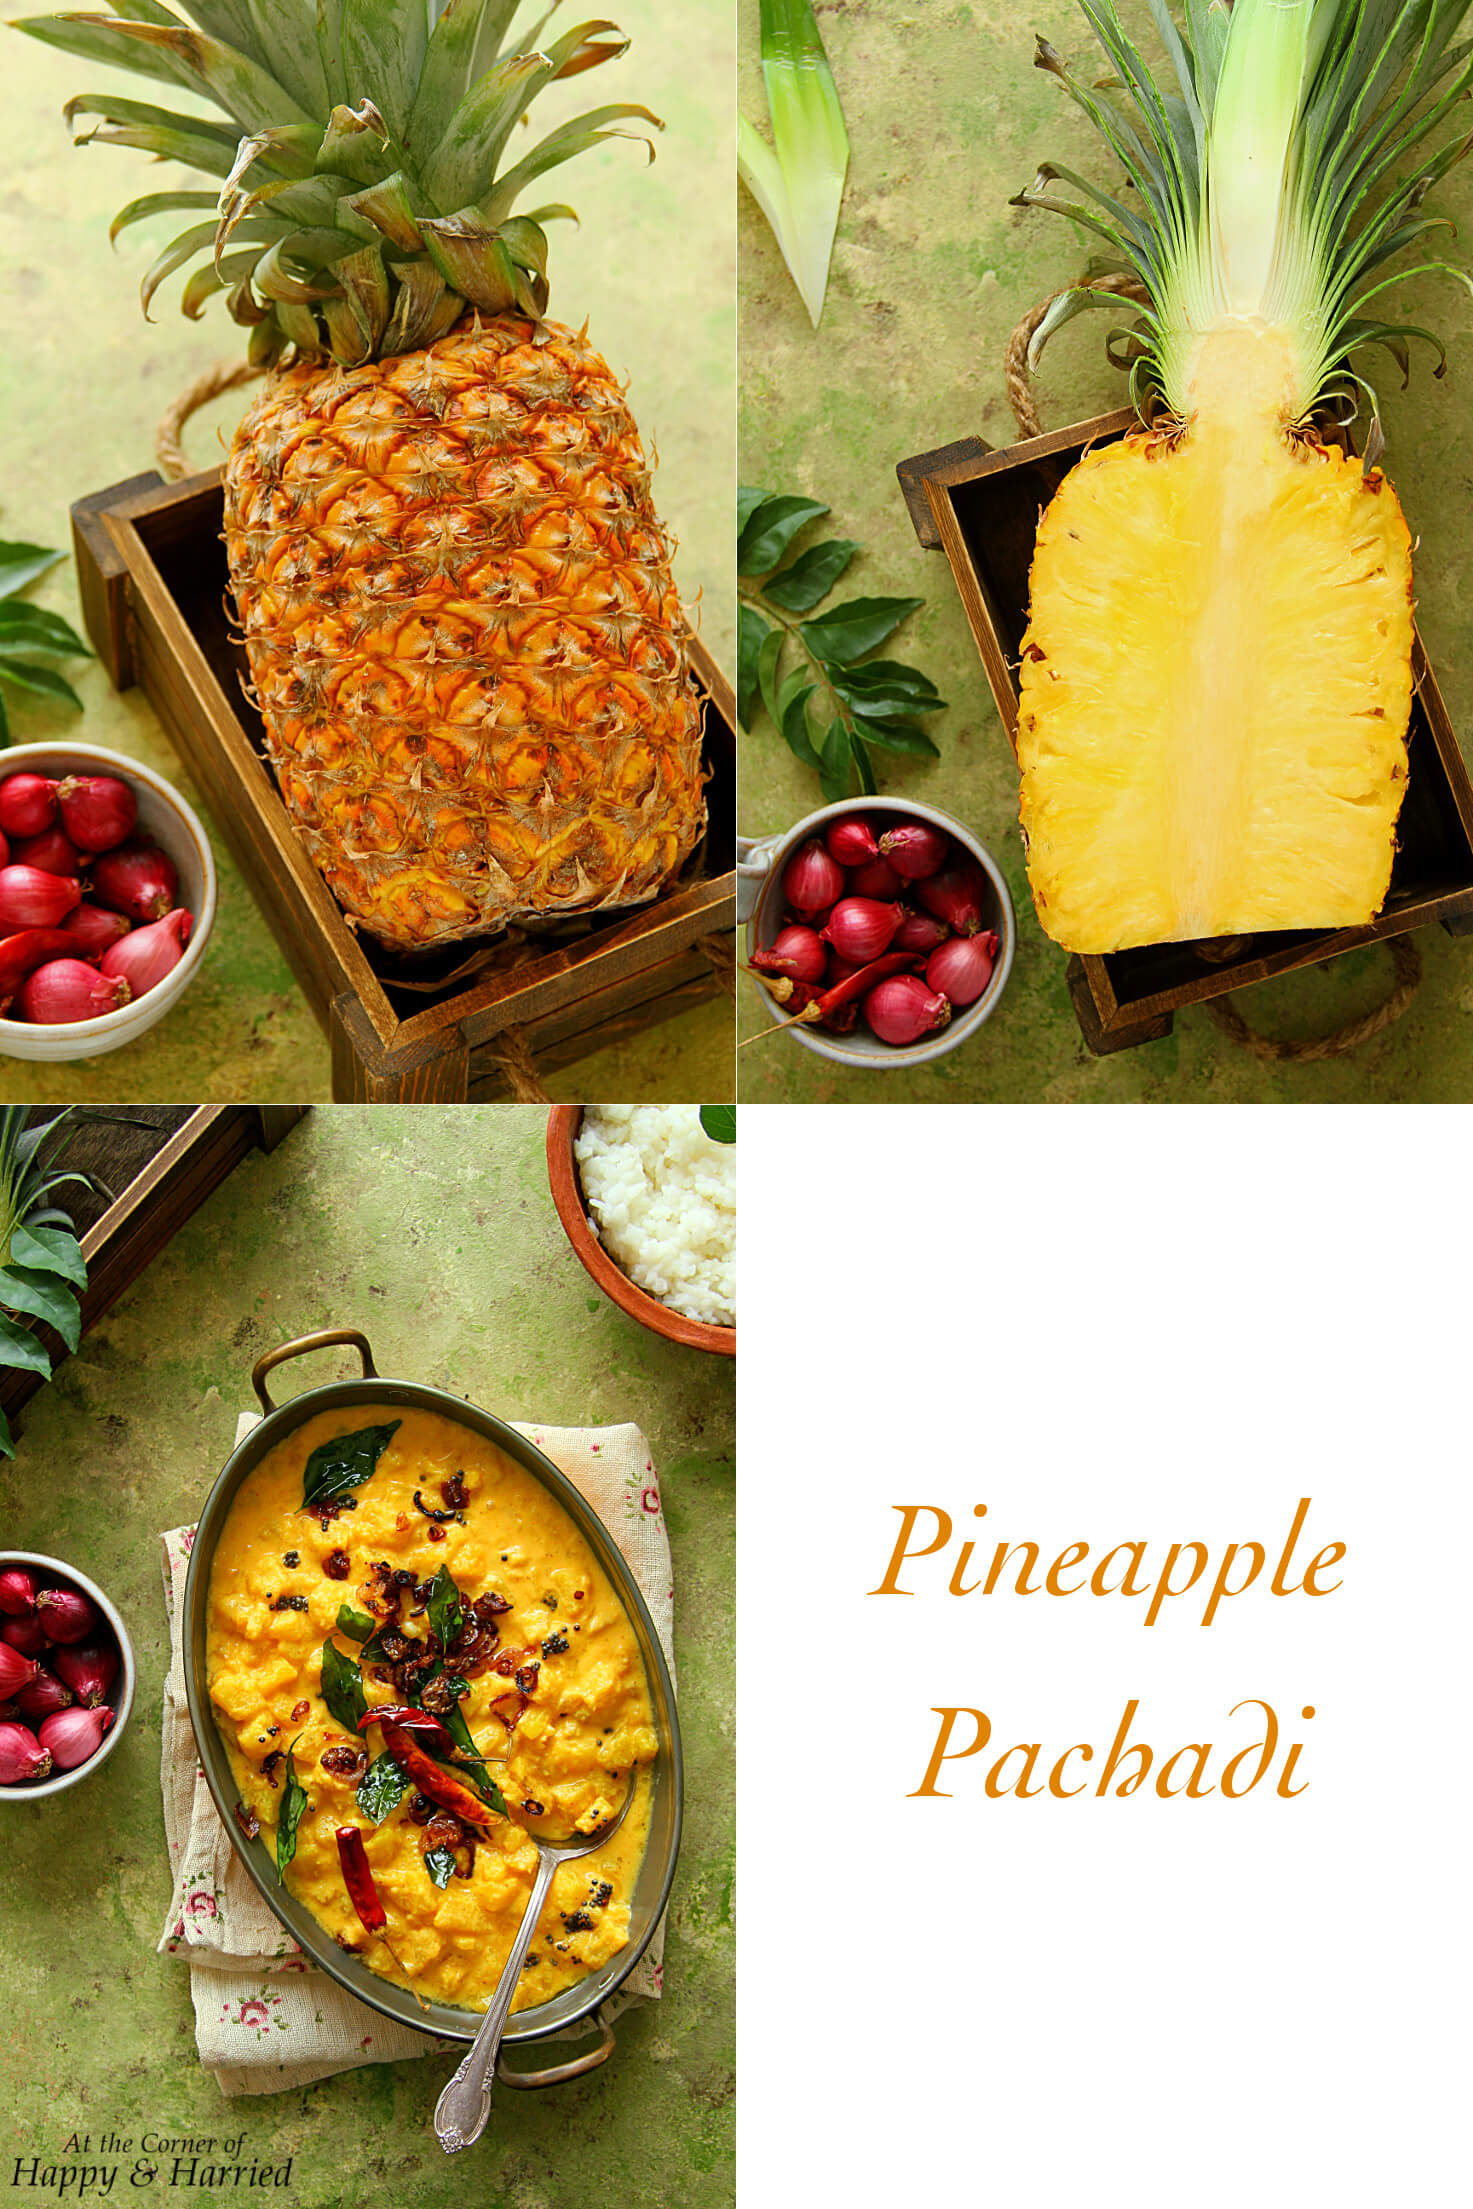 PINEAPPLE PACHADI {PINEAPPLE IN SPICED COCONUT-YOGURT CURRY} - HAPPY&HARRIED